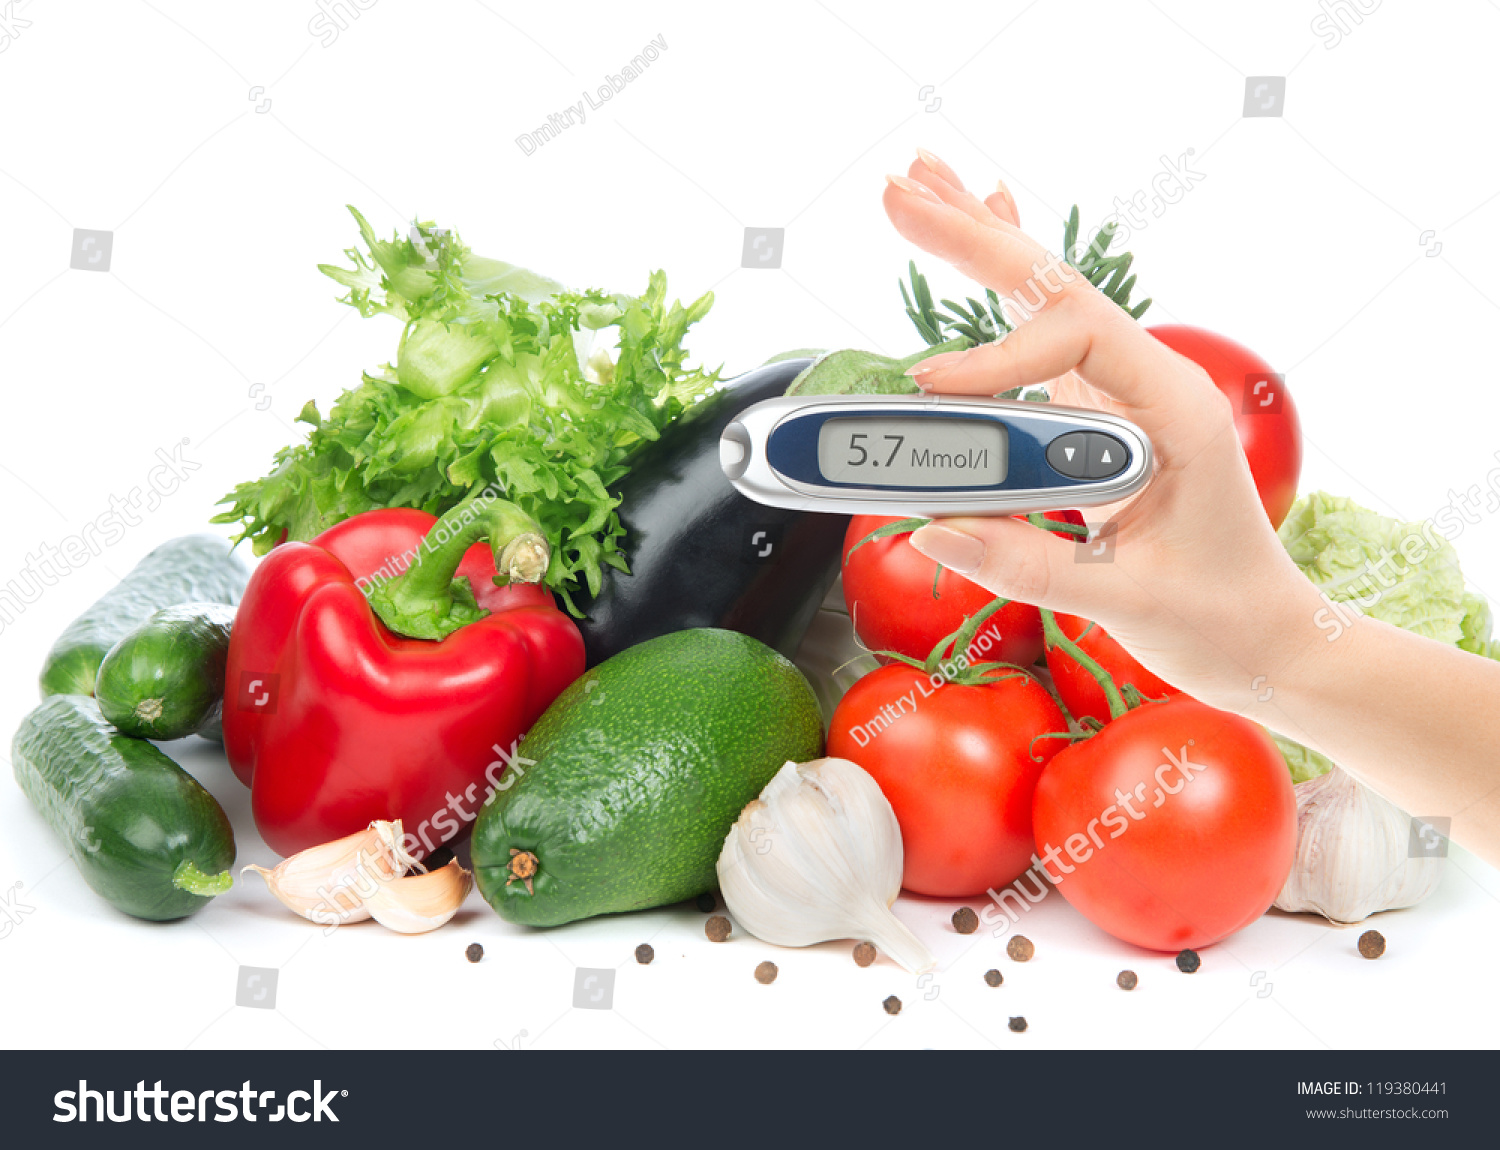 Diabetes Concept Glucometer For Glucose Level Blood Test In Hand And Healthy Organic Food On A